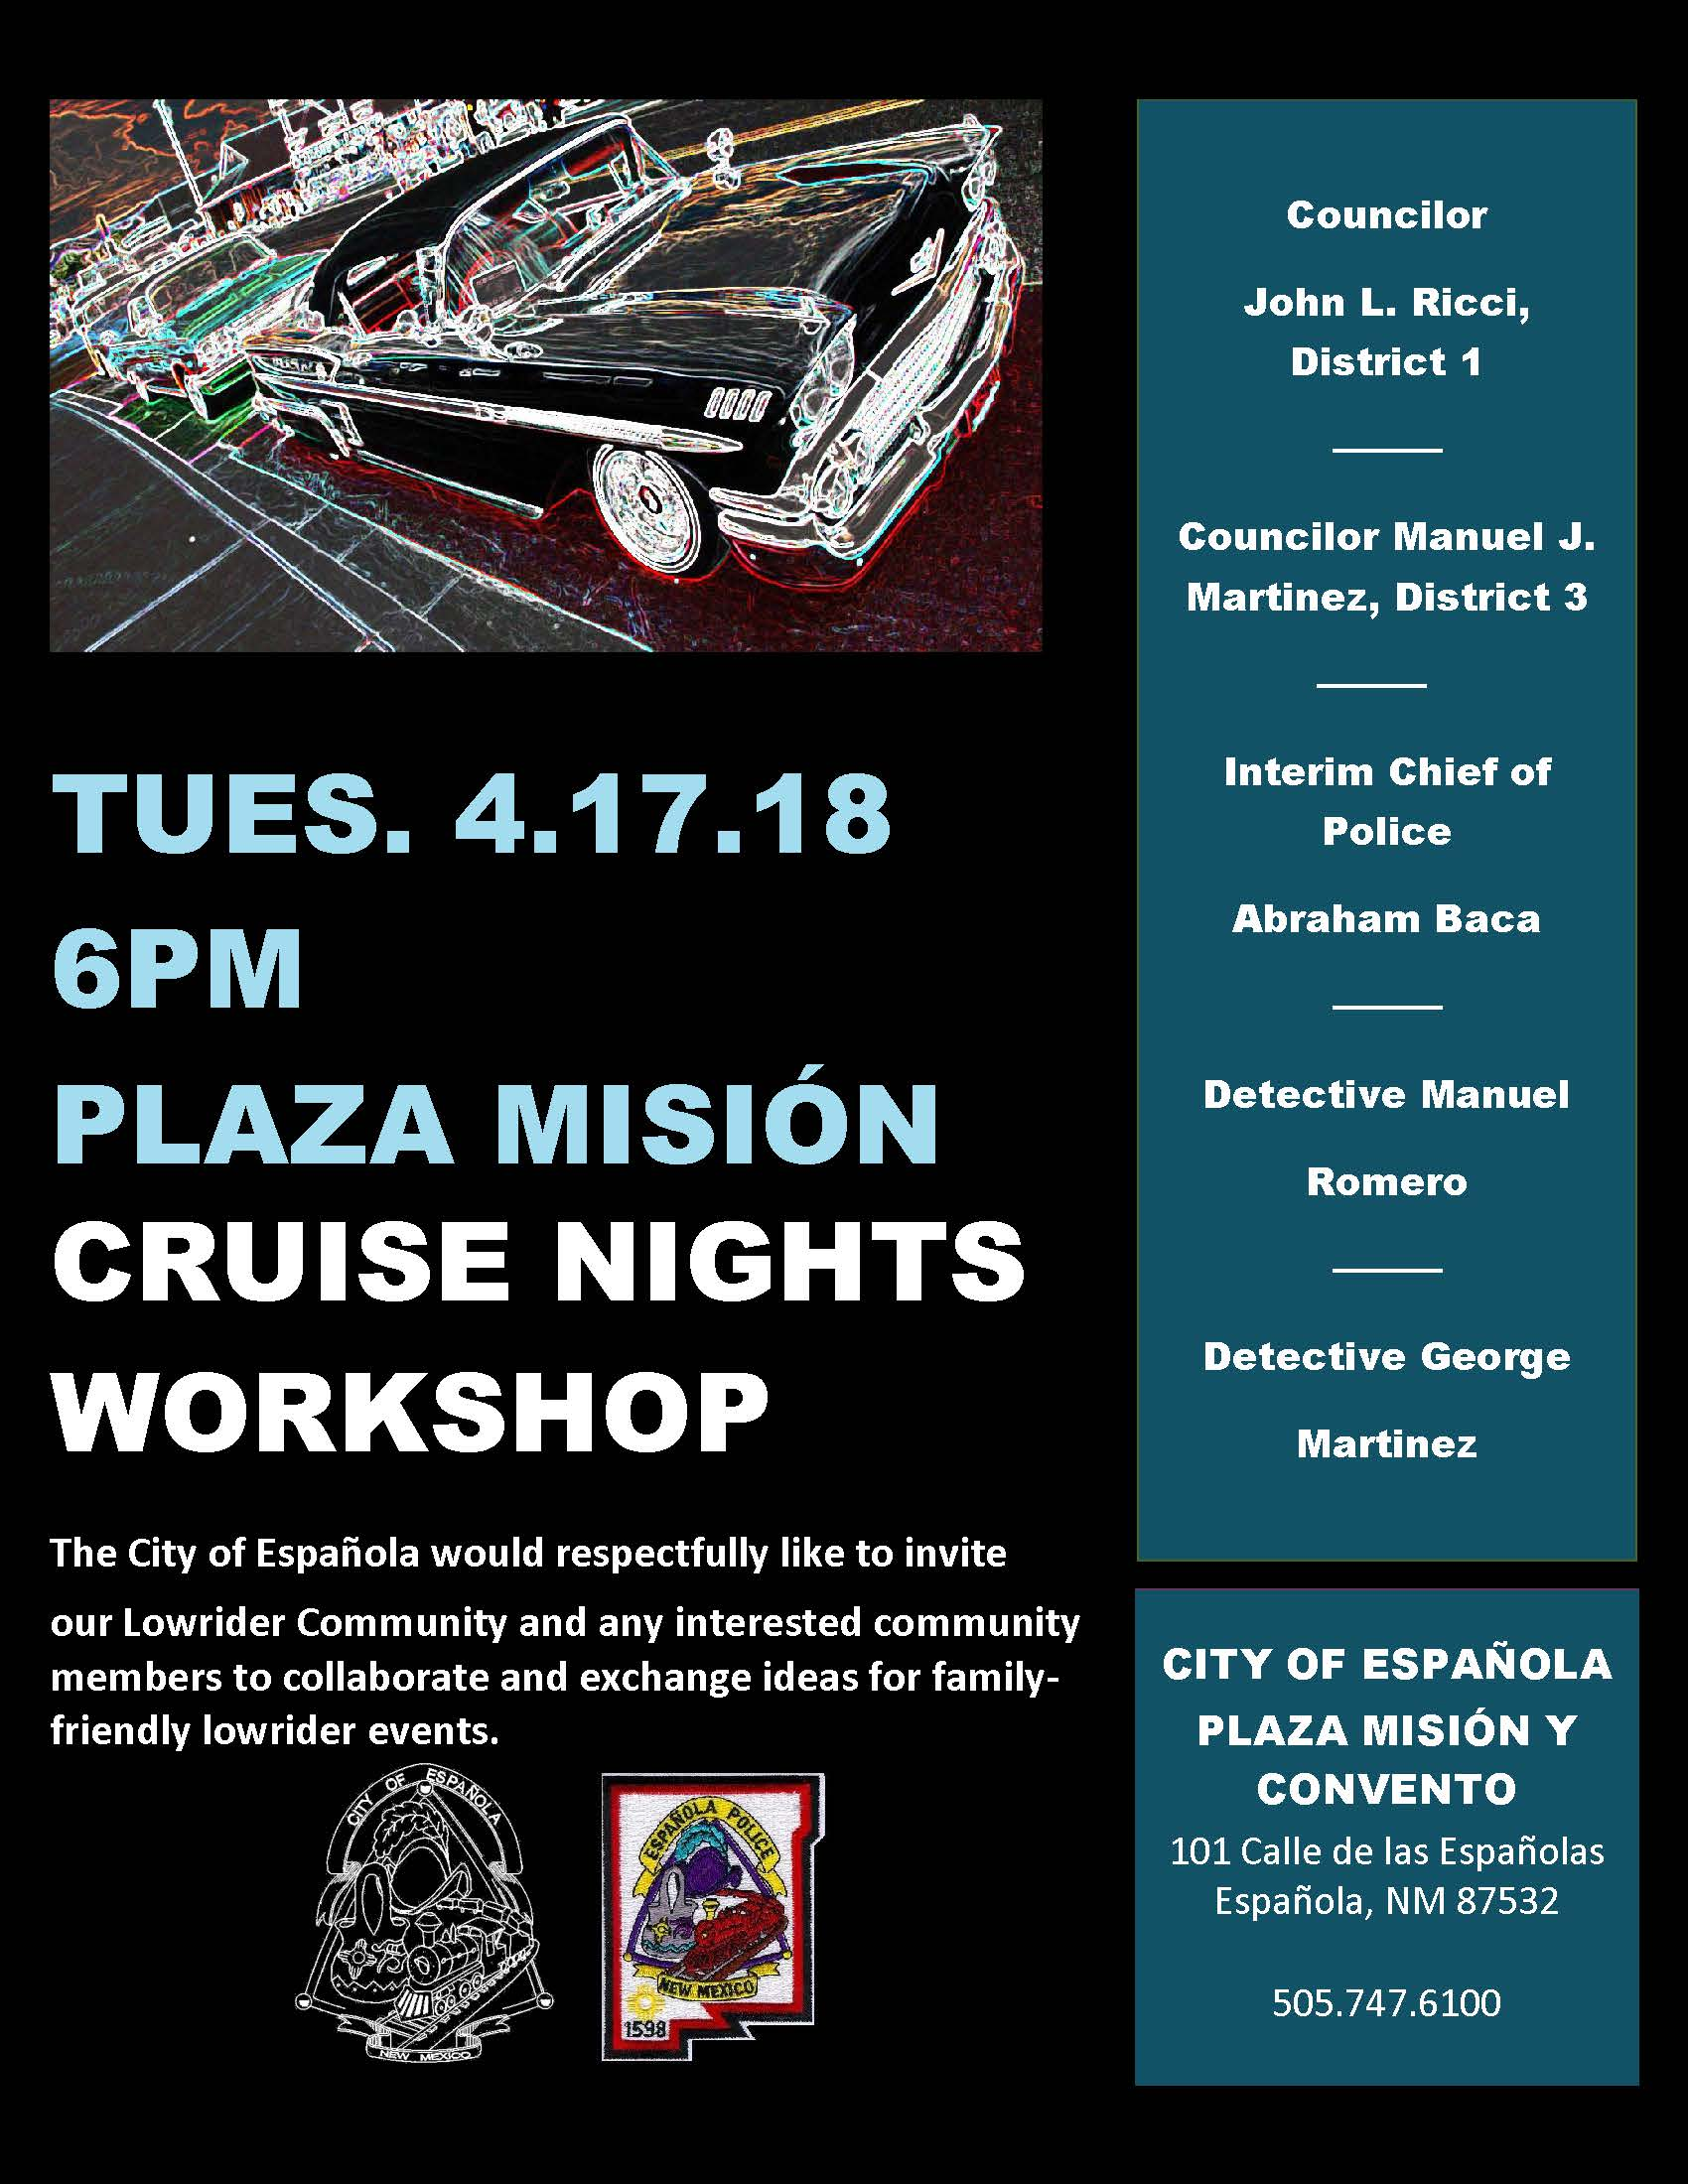 4.17.18 Cruise Nights Workshop